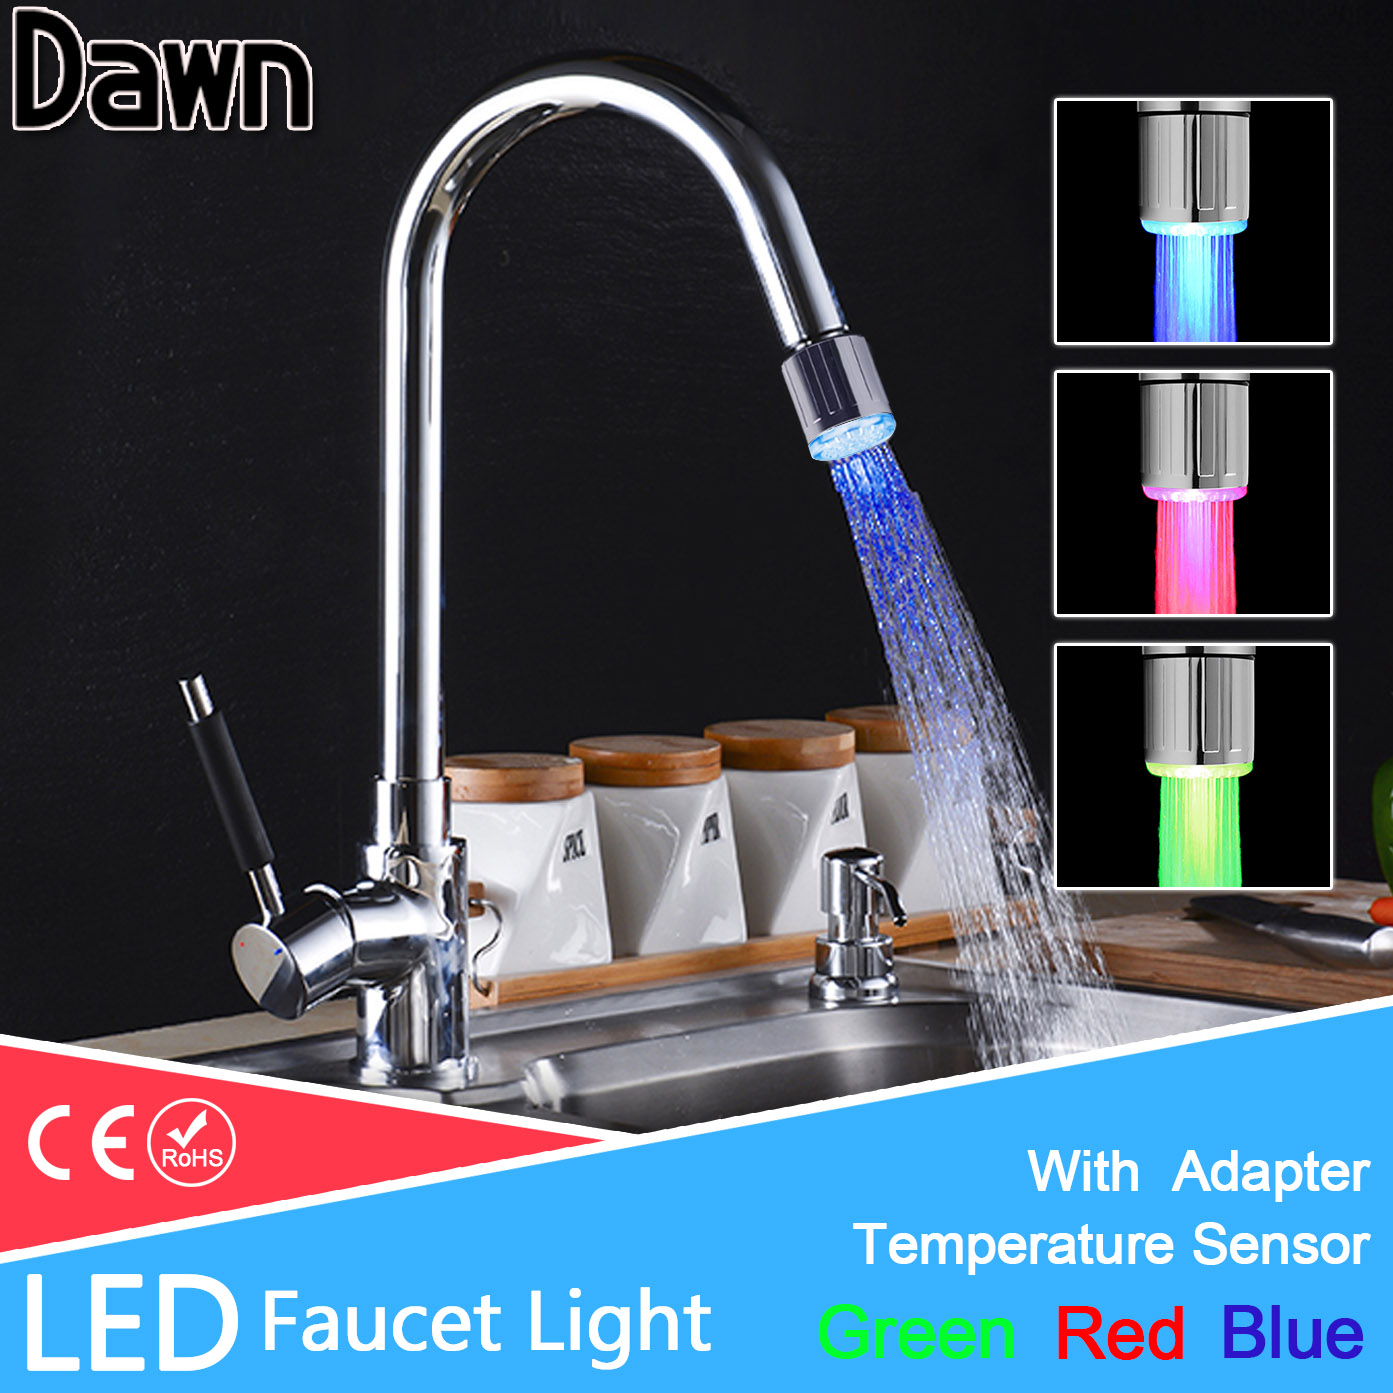 Kitchen Faucets With Led Lights Led Faucet Light Temperature Sensor Rgb Glow Shower Water